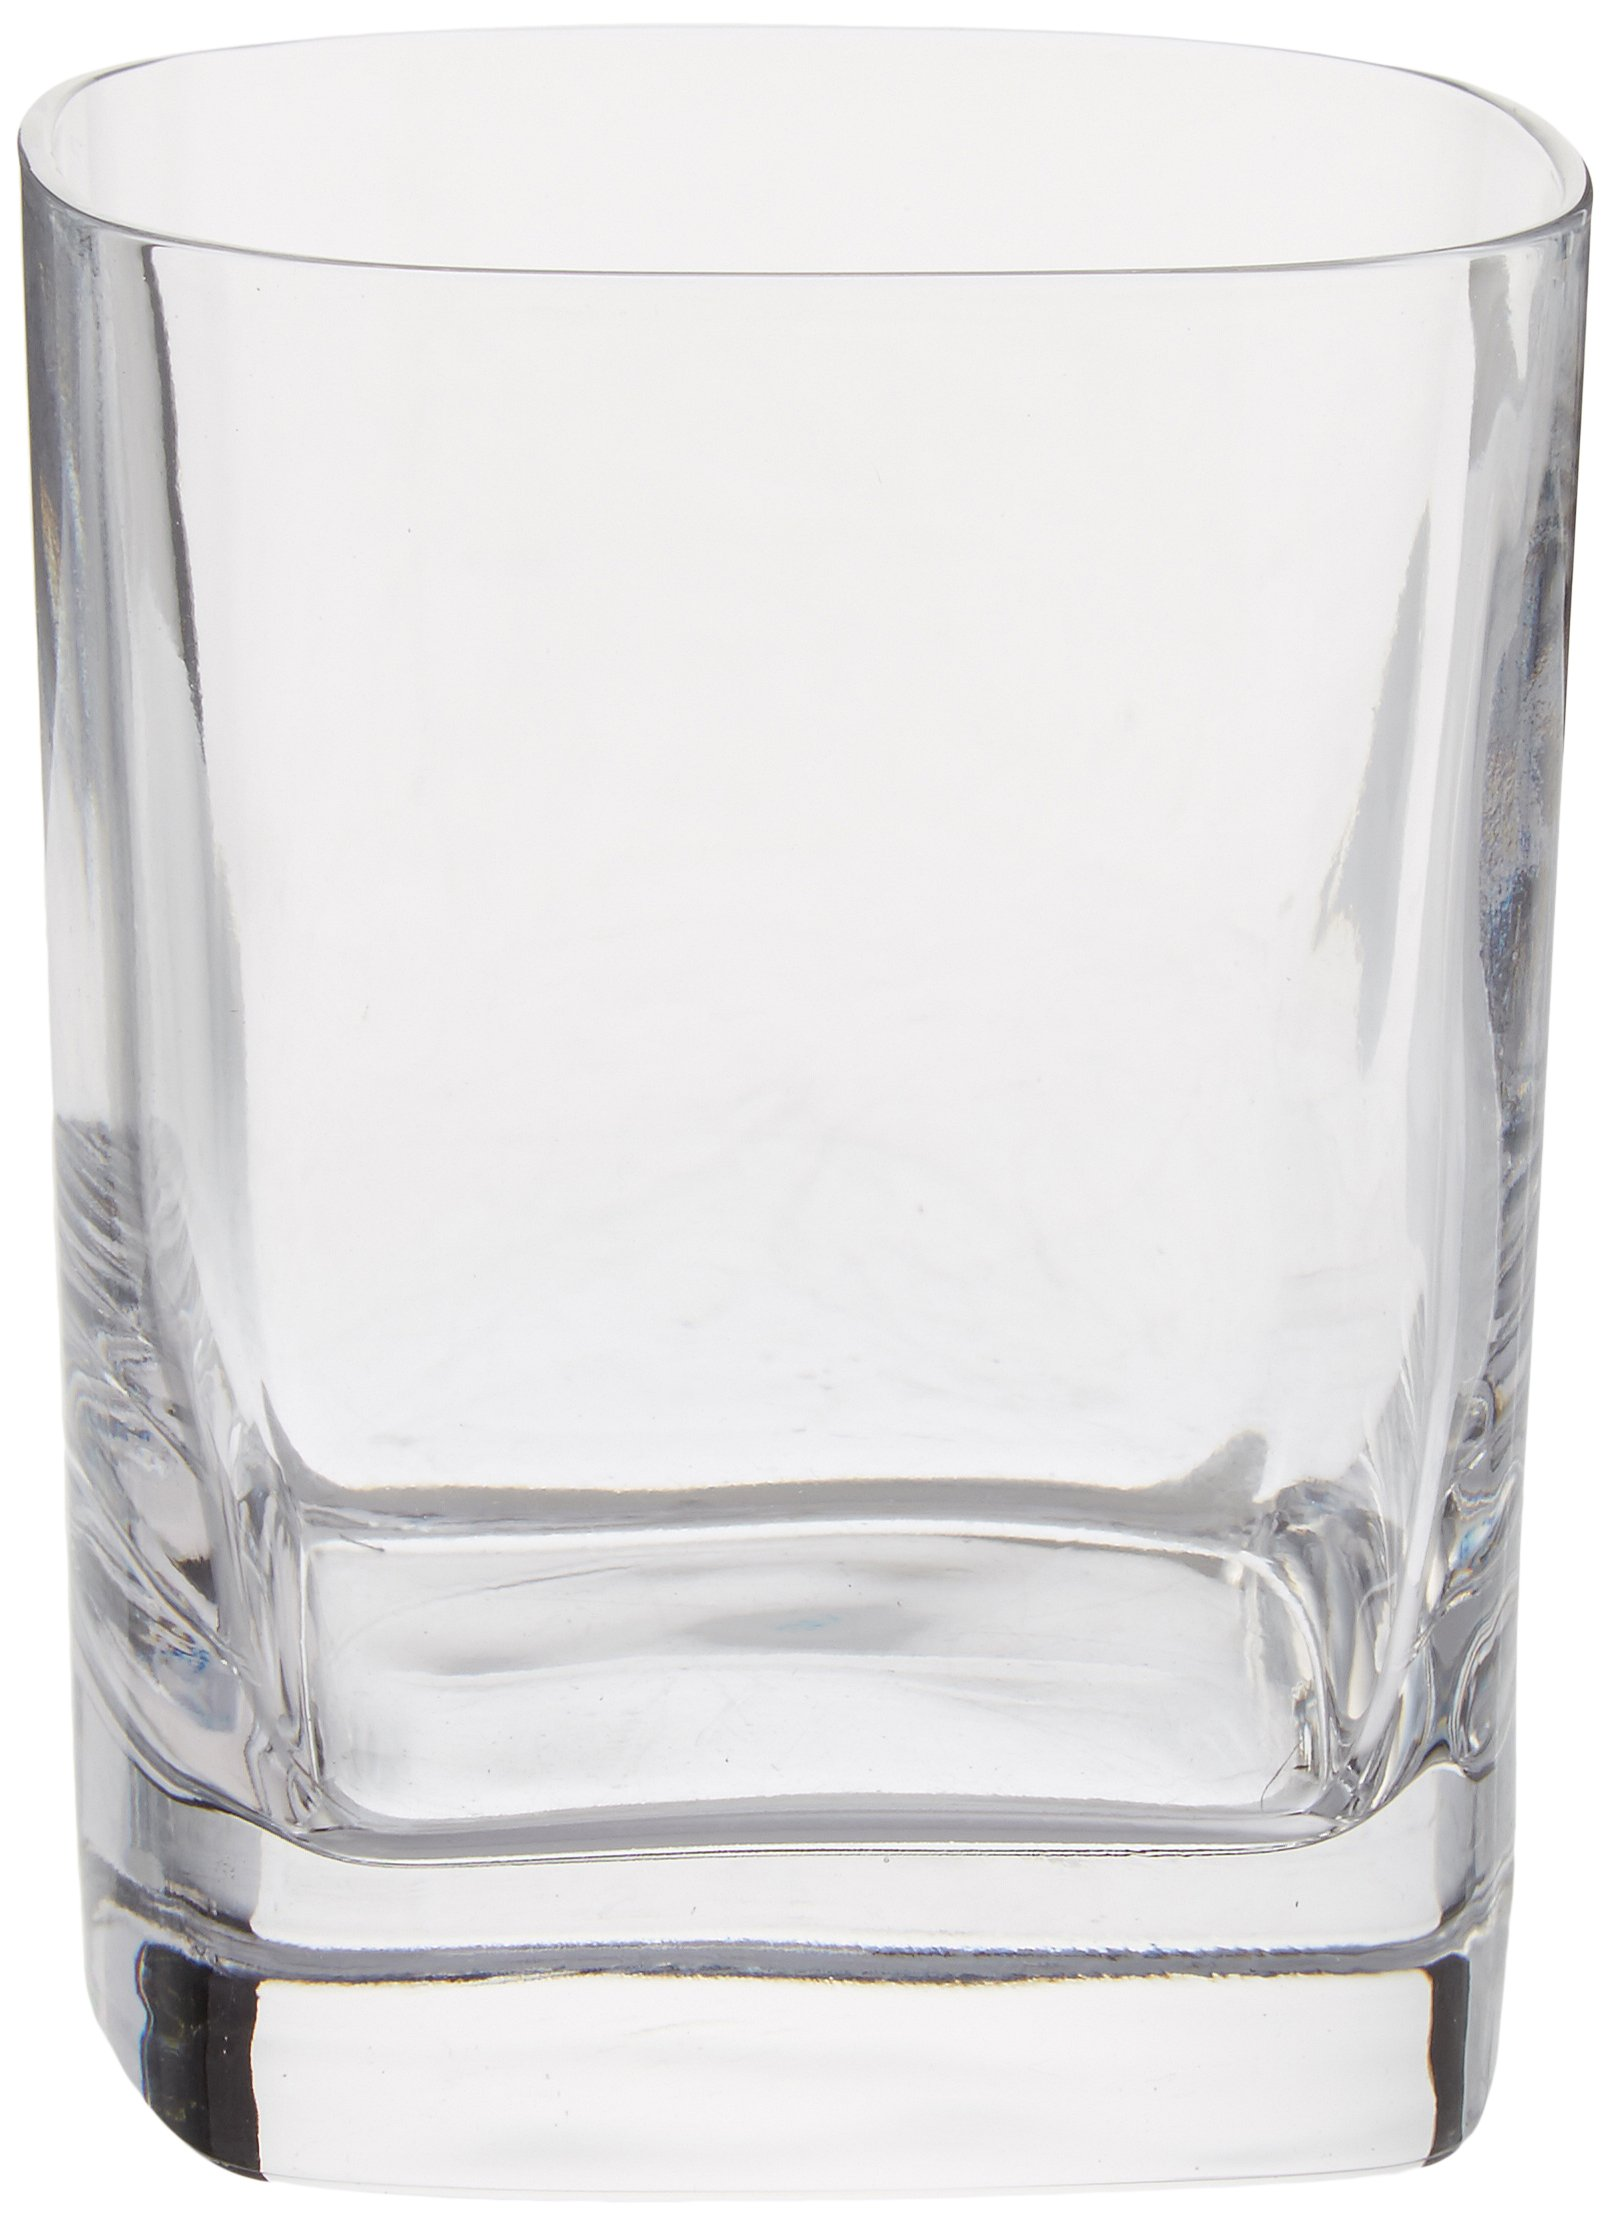 Luigi Bormioli, us kitchen, LUIG9 09833/06 Strauss 11.75 oz Double Old Fashion Glasses, Set of 6, Clear